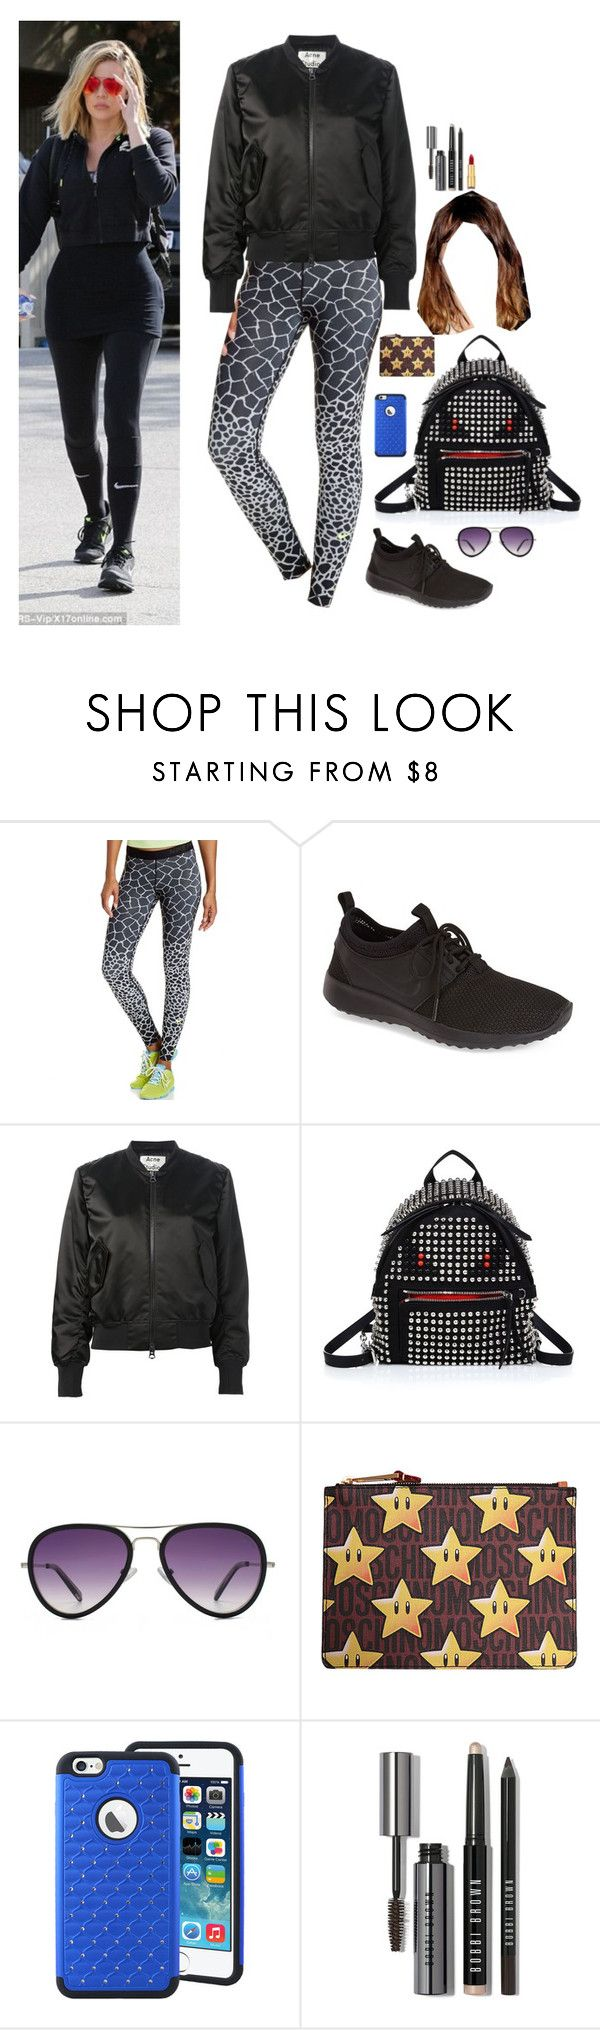 """""""B-sport day with Khloe in New York"""" by onedirectionnhllz ❤ liked on Polyvore featuring NIKE, Acne Studios, Fendi, HOOK LDN, Moschino, Bobbi Brown Cosmetics and Isaac Mizrahi"""